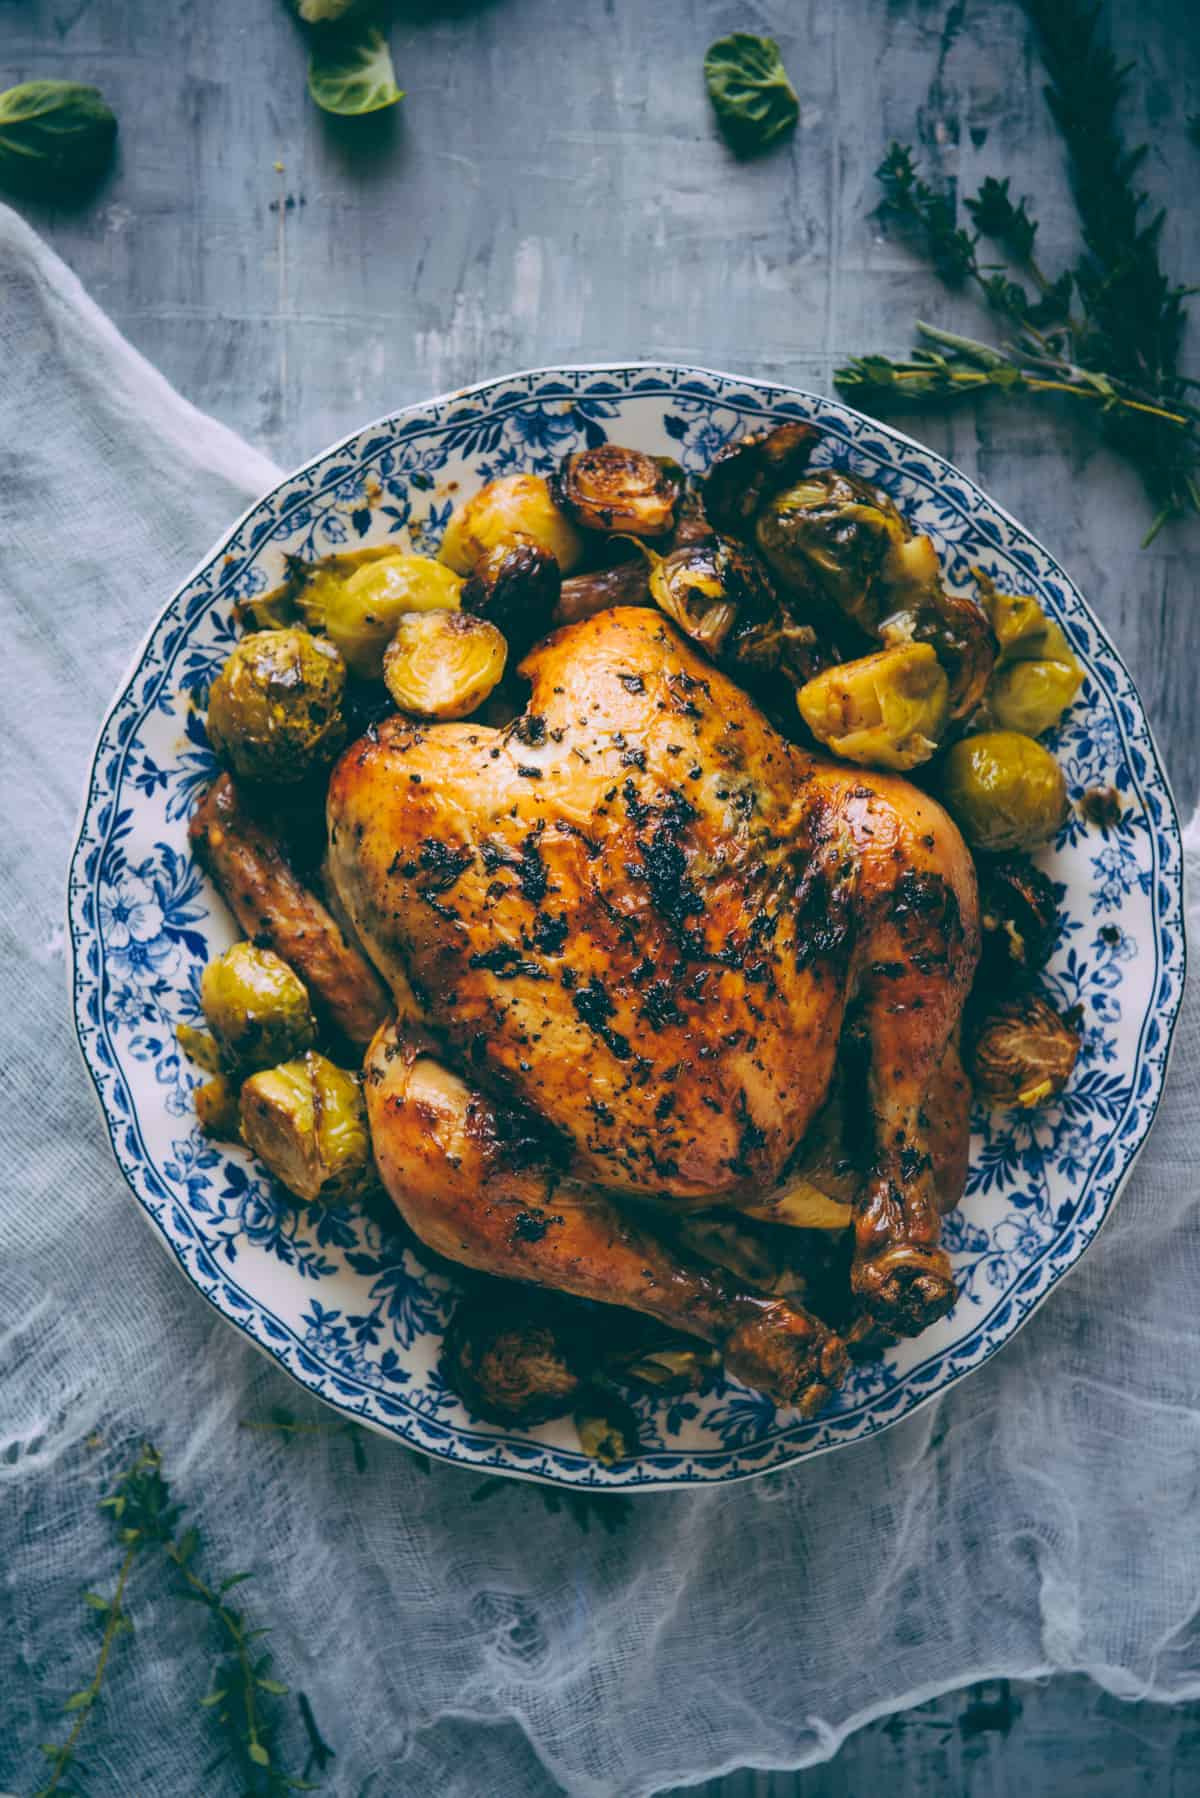 Roast Chicken With Brussels Sprouts Souvlaki For The Soul